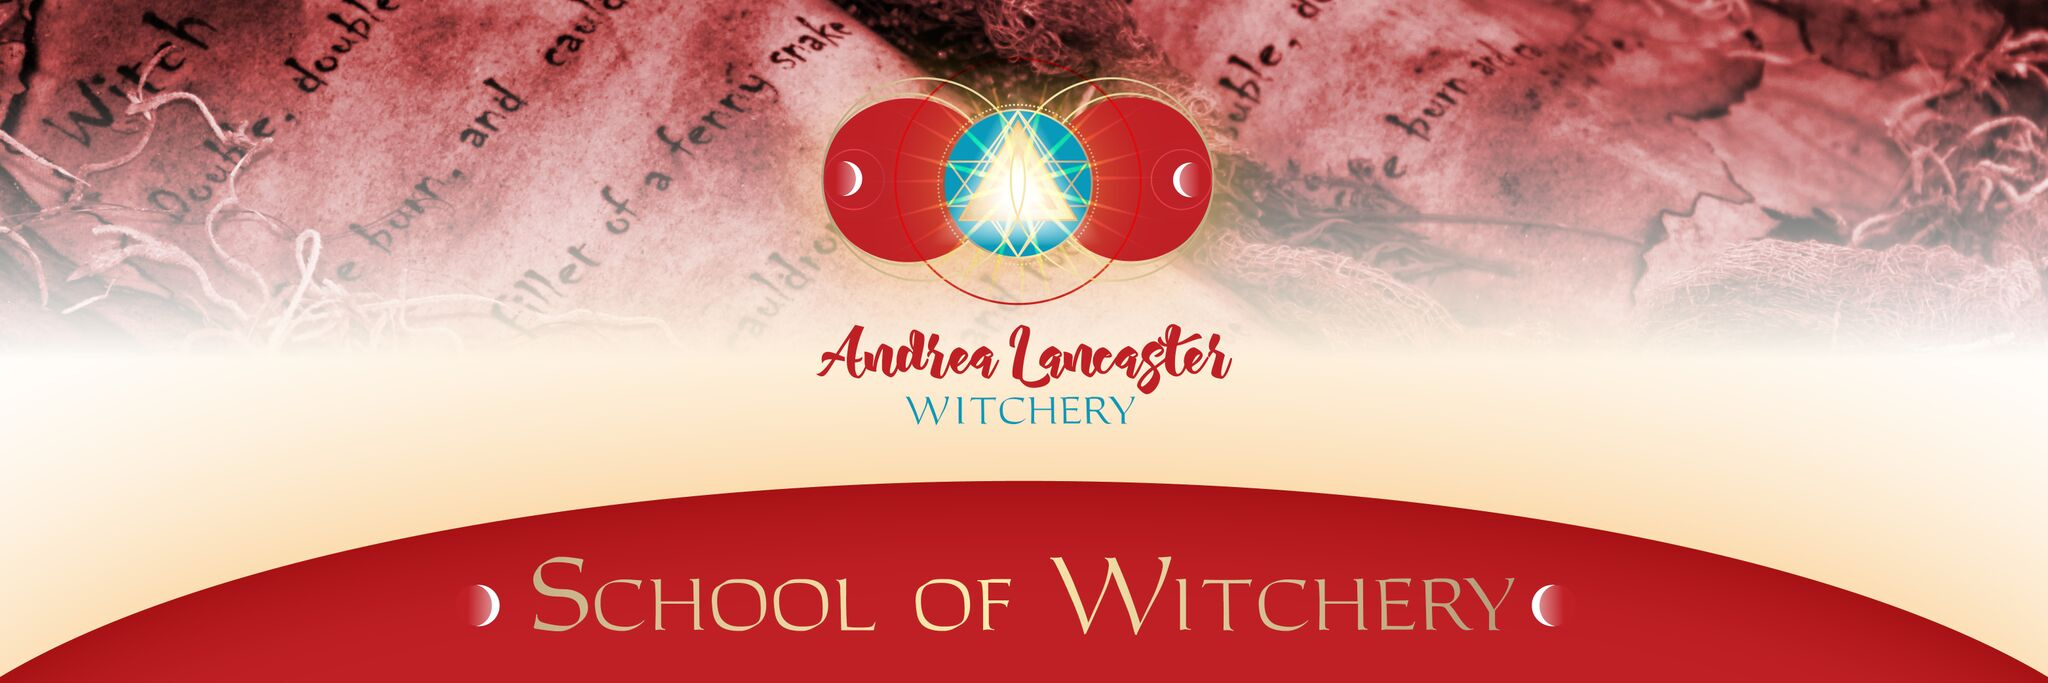 simplero school of witchery banner